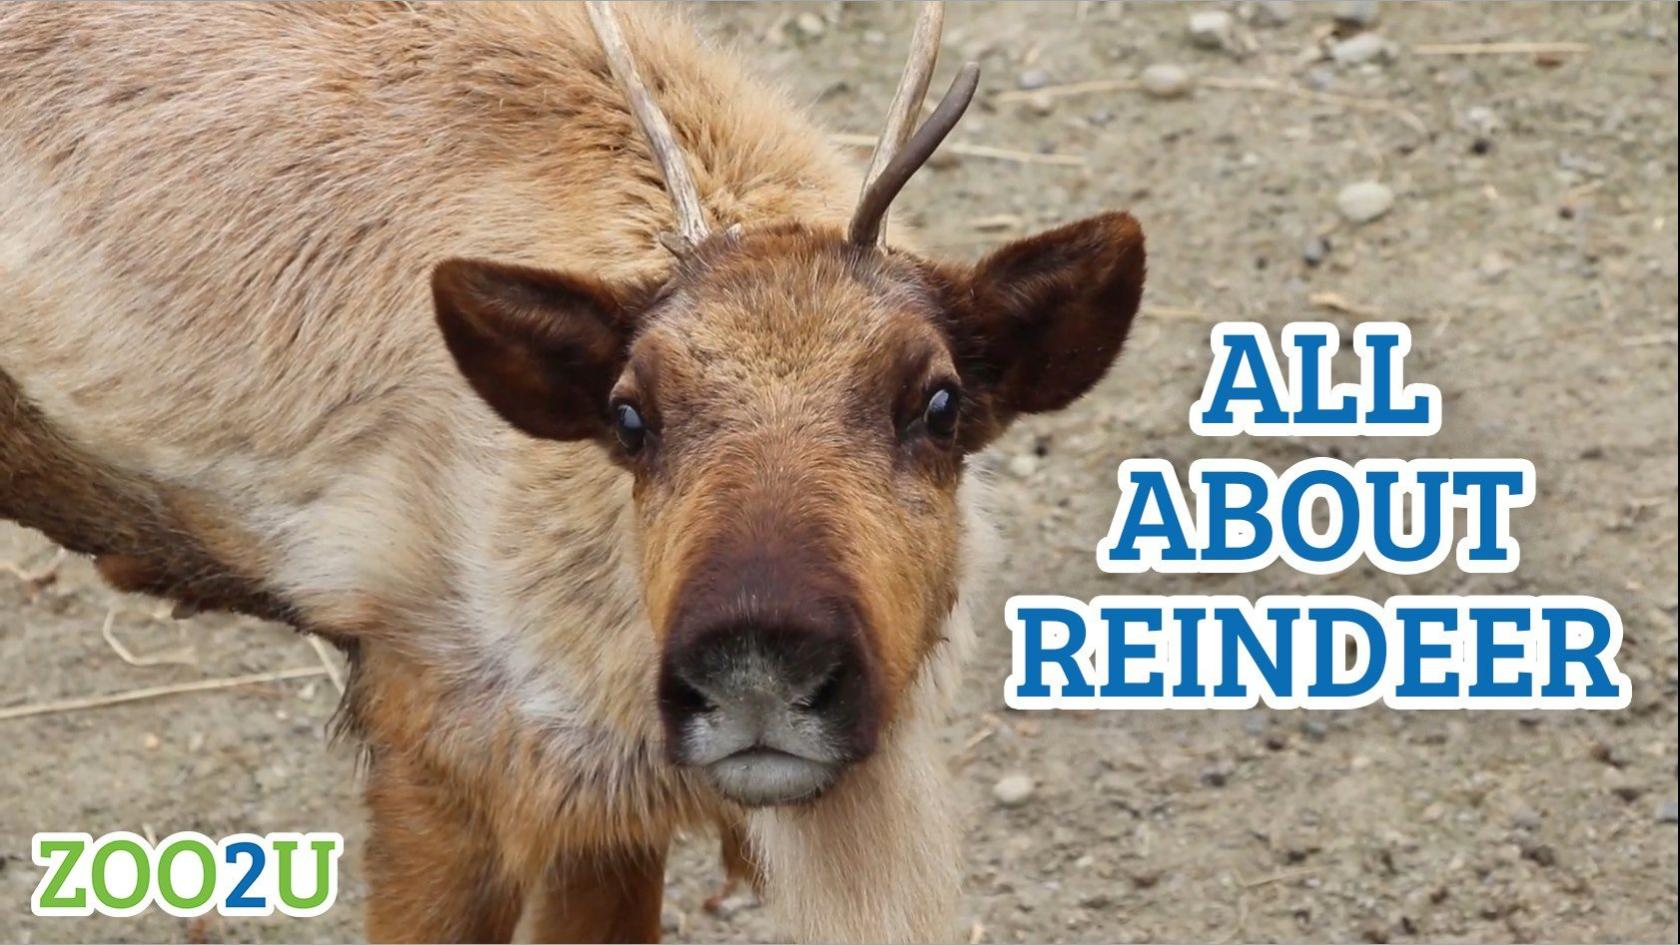 all about reindeer button